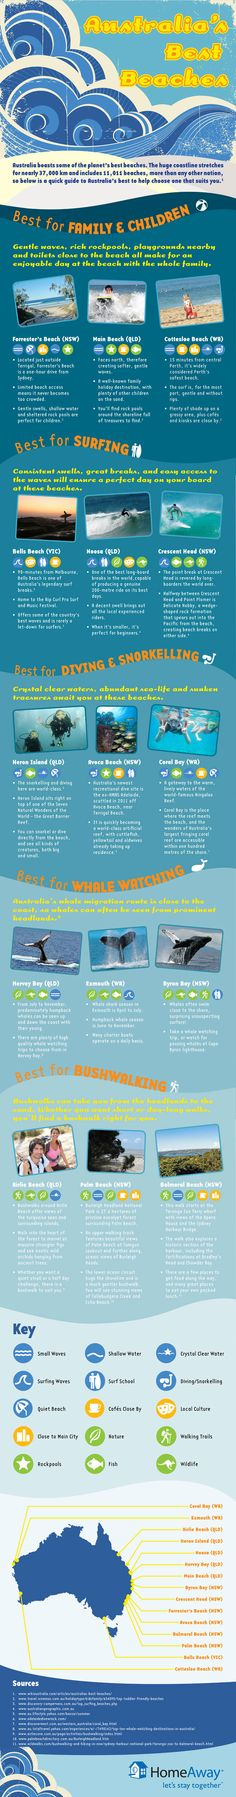 Australia's Best Beaches [Infographic] Best Surfing, Best Diving & Snorkeling, Best Whale Watching, Best Bushwalking & Best Beaches for Families and Kids